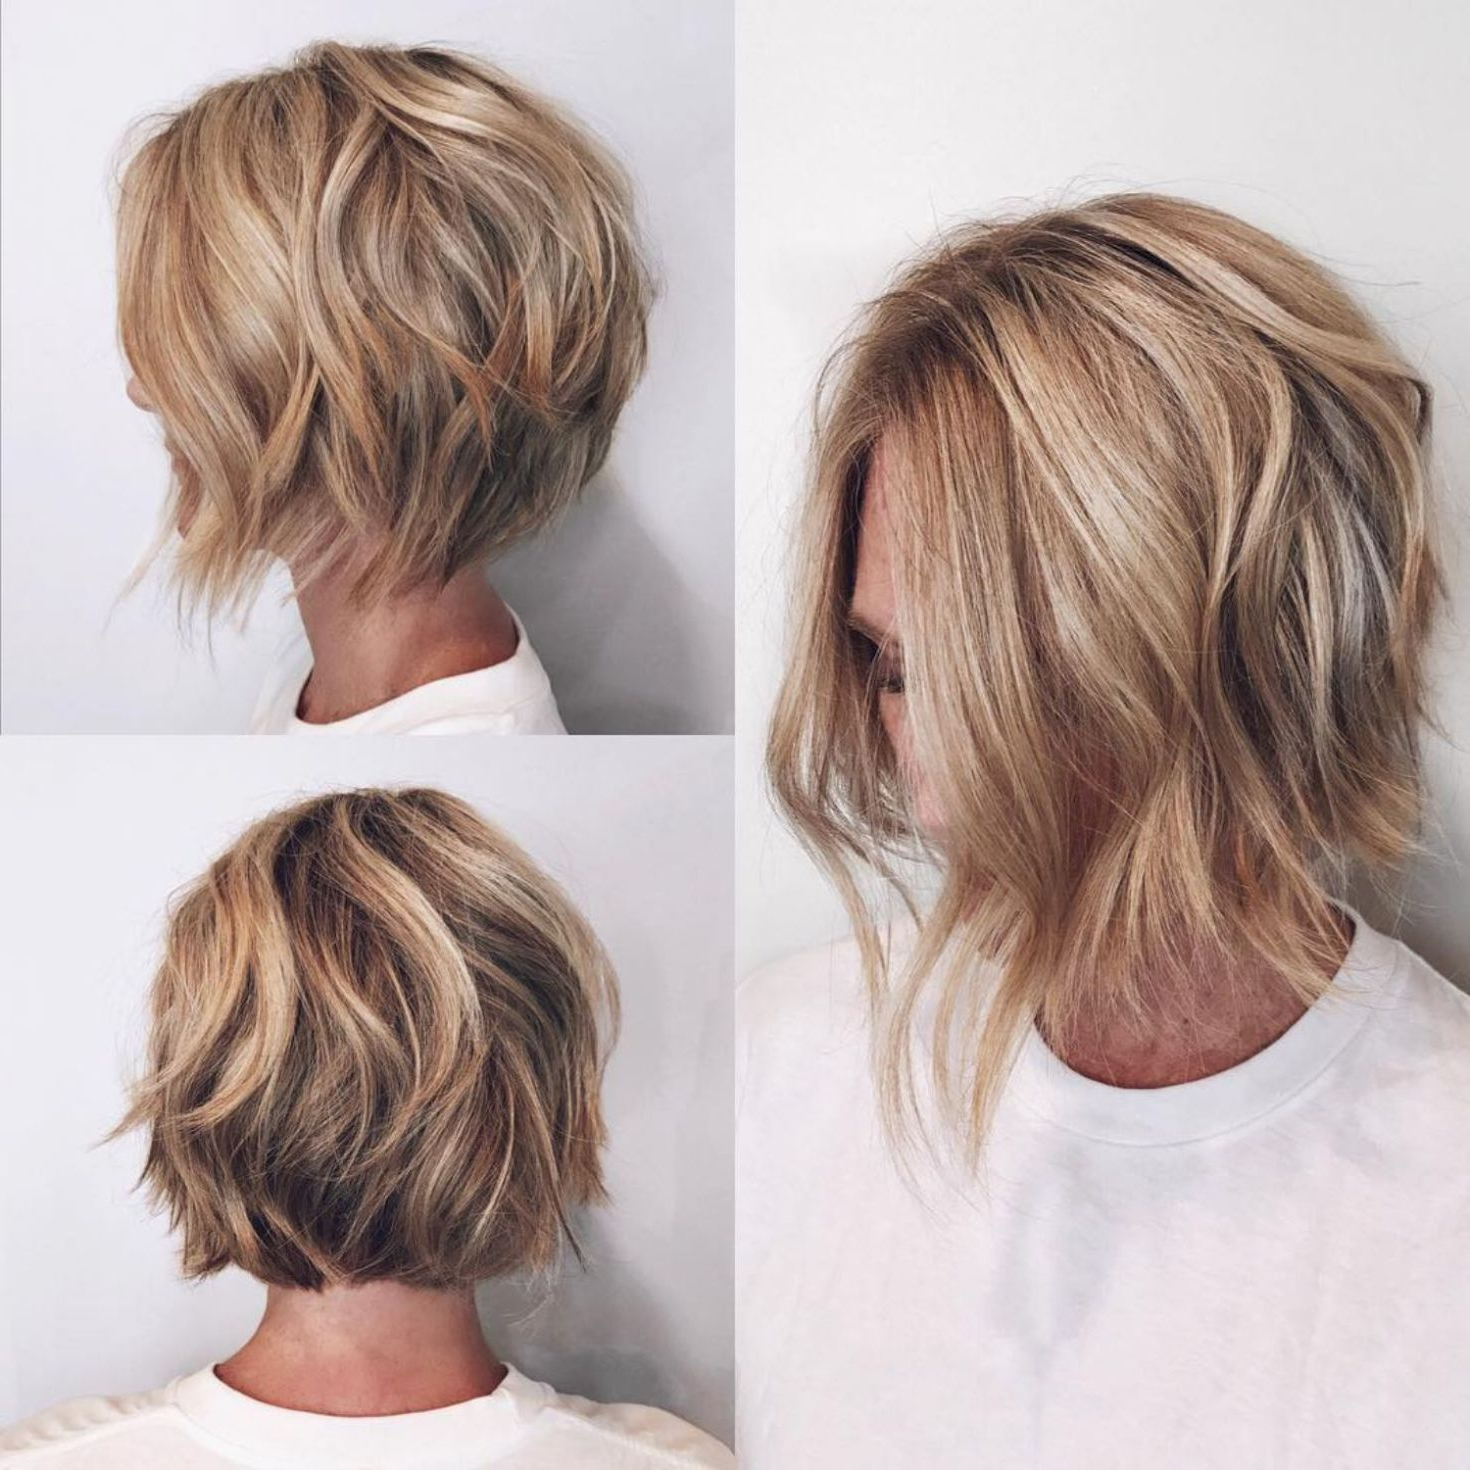 60 Layered Bob Styles: Modern Haircuts With Layers For Any Occasion Inside Caramel Blonde Rounded Layered Bob Hairstyles (View 7 of 20)